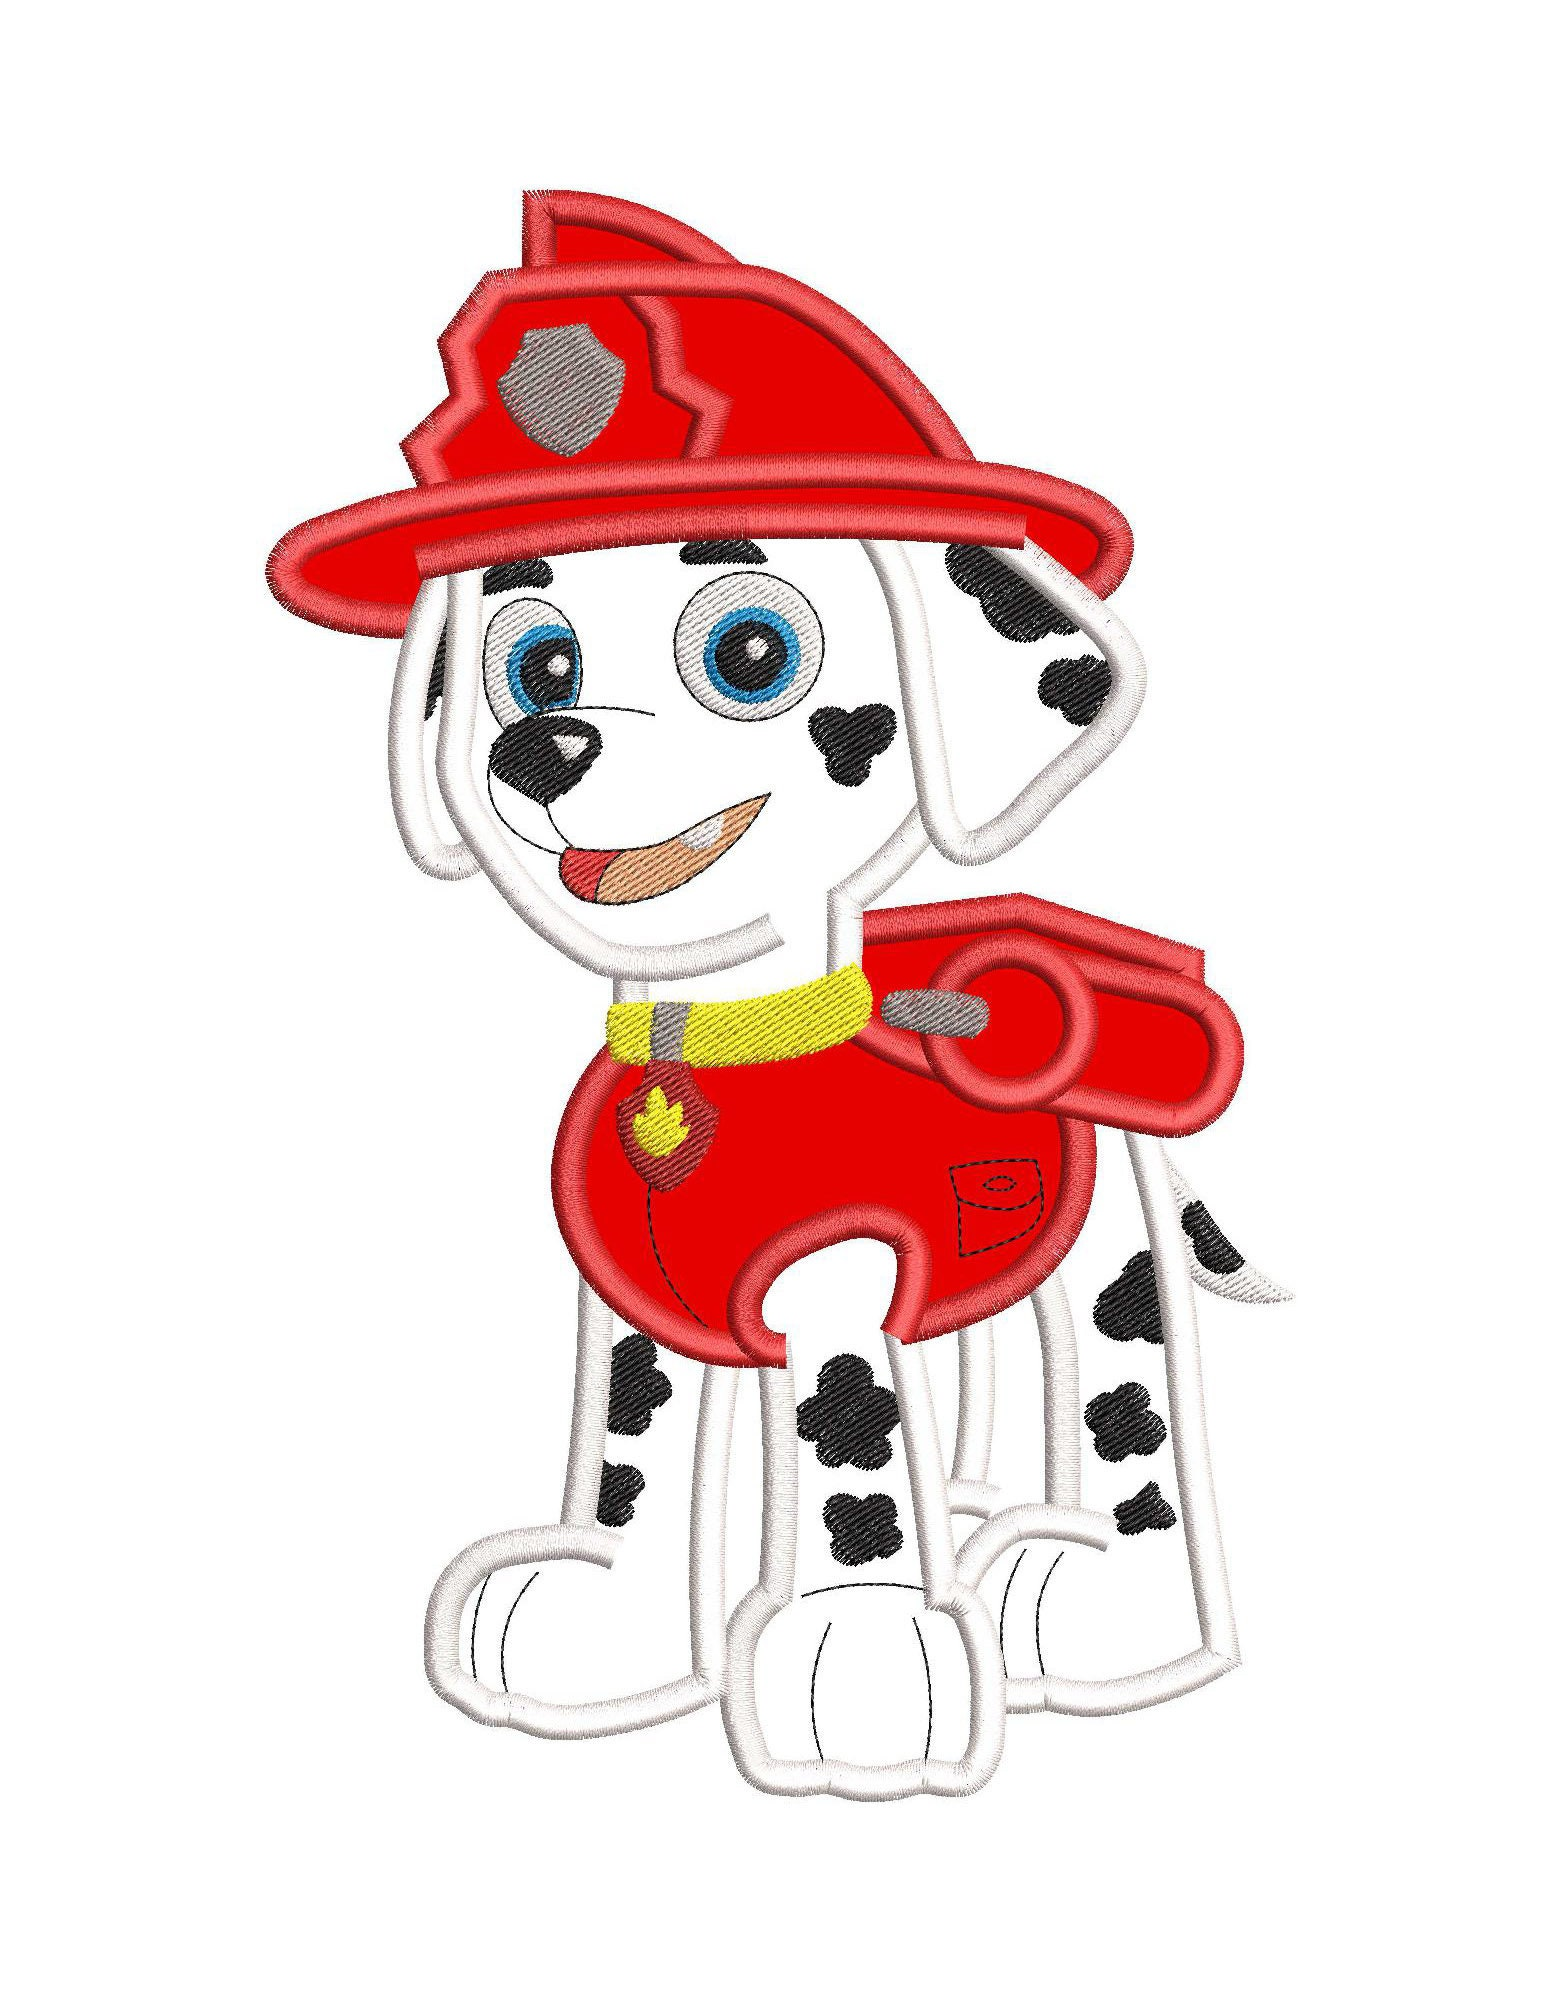 Marshall Paw Patrol Applique Embroidery Design INSTANT